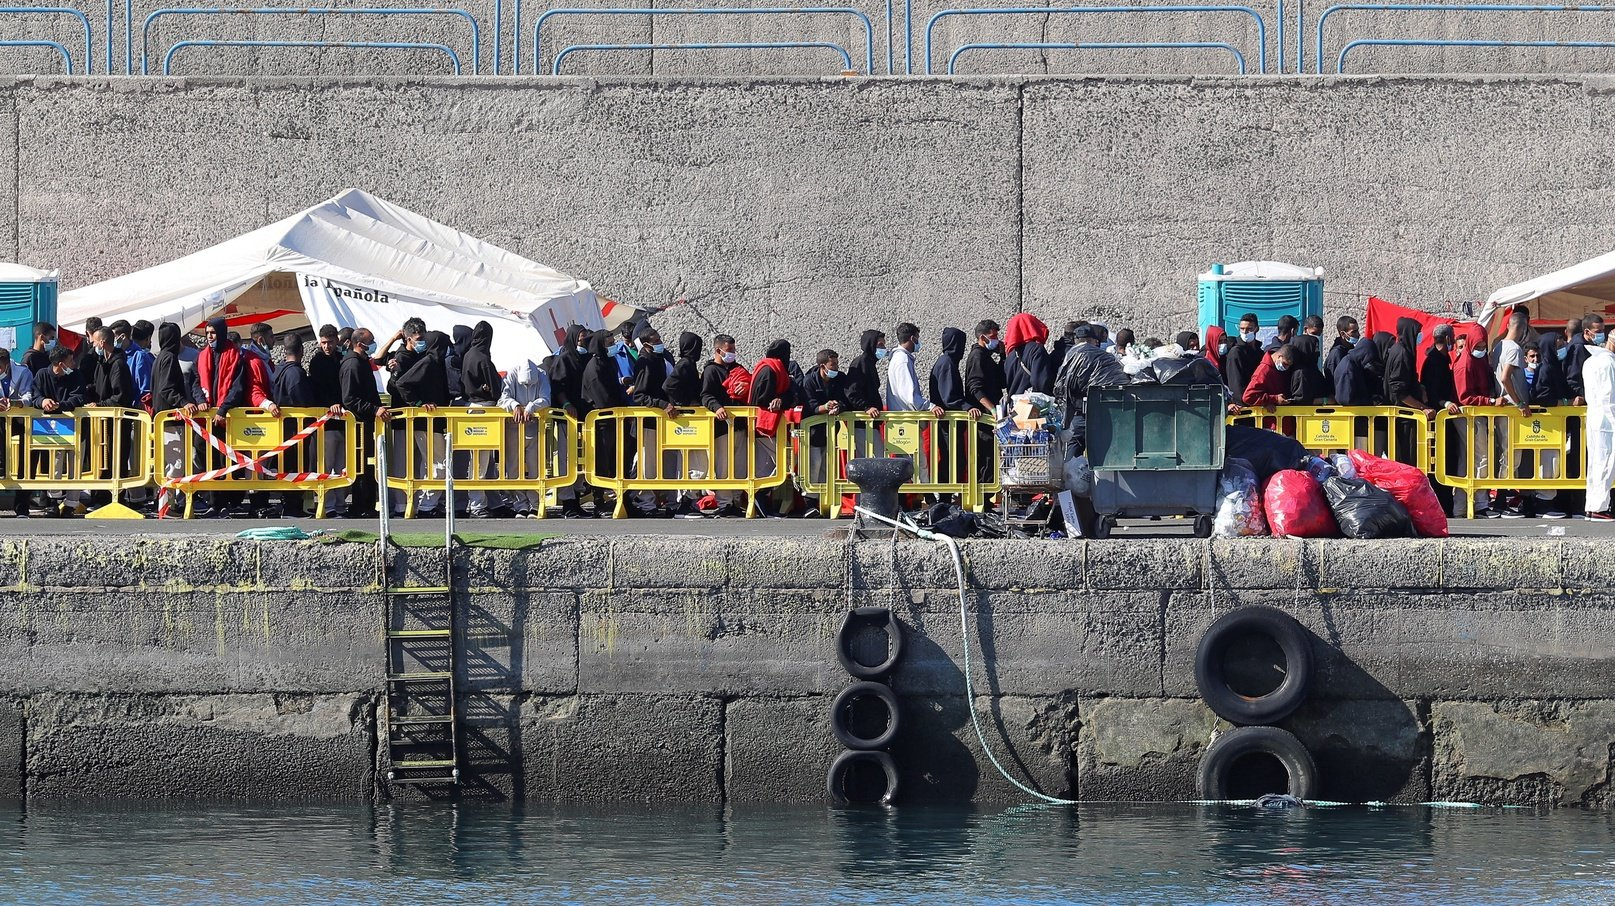 epa08807312 Migrants queue up to receive assistance at Arguineguin port in Gran Canarias, Spain, 08 November 2020. Almost 600 migrants traveling on board 21 toy boats were rescued between the late hours 07 November and the early ours of 08 November 2020. Almost 500,000 migrants have arrived to the Canary Islands throughout the year.  EPA/ELVIRA URQUIJO A.